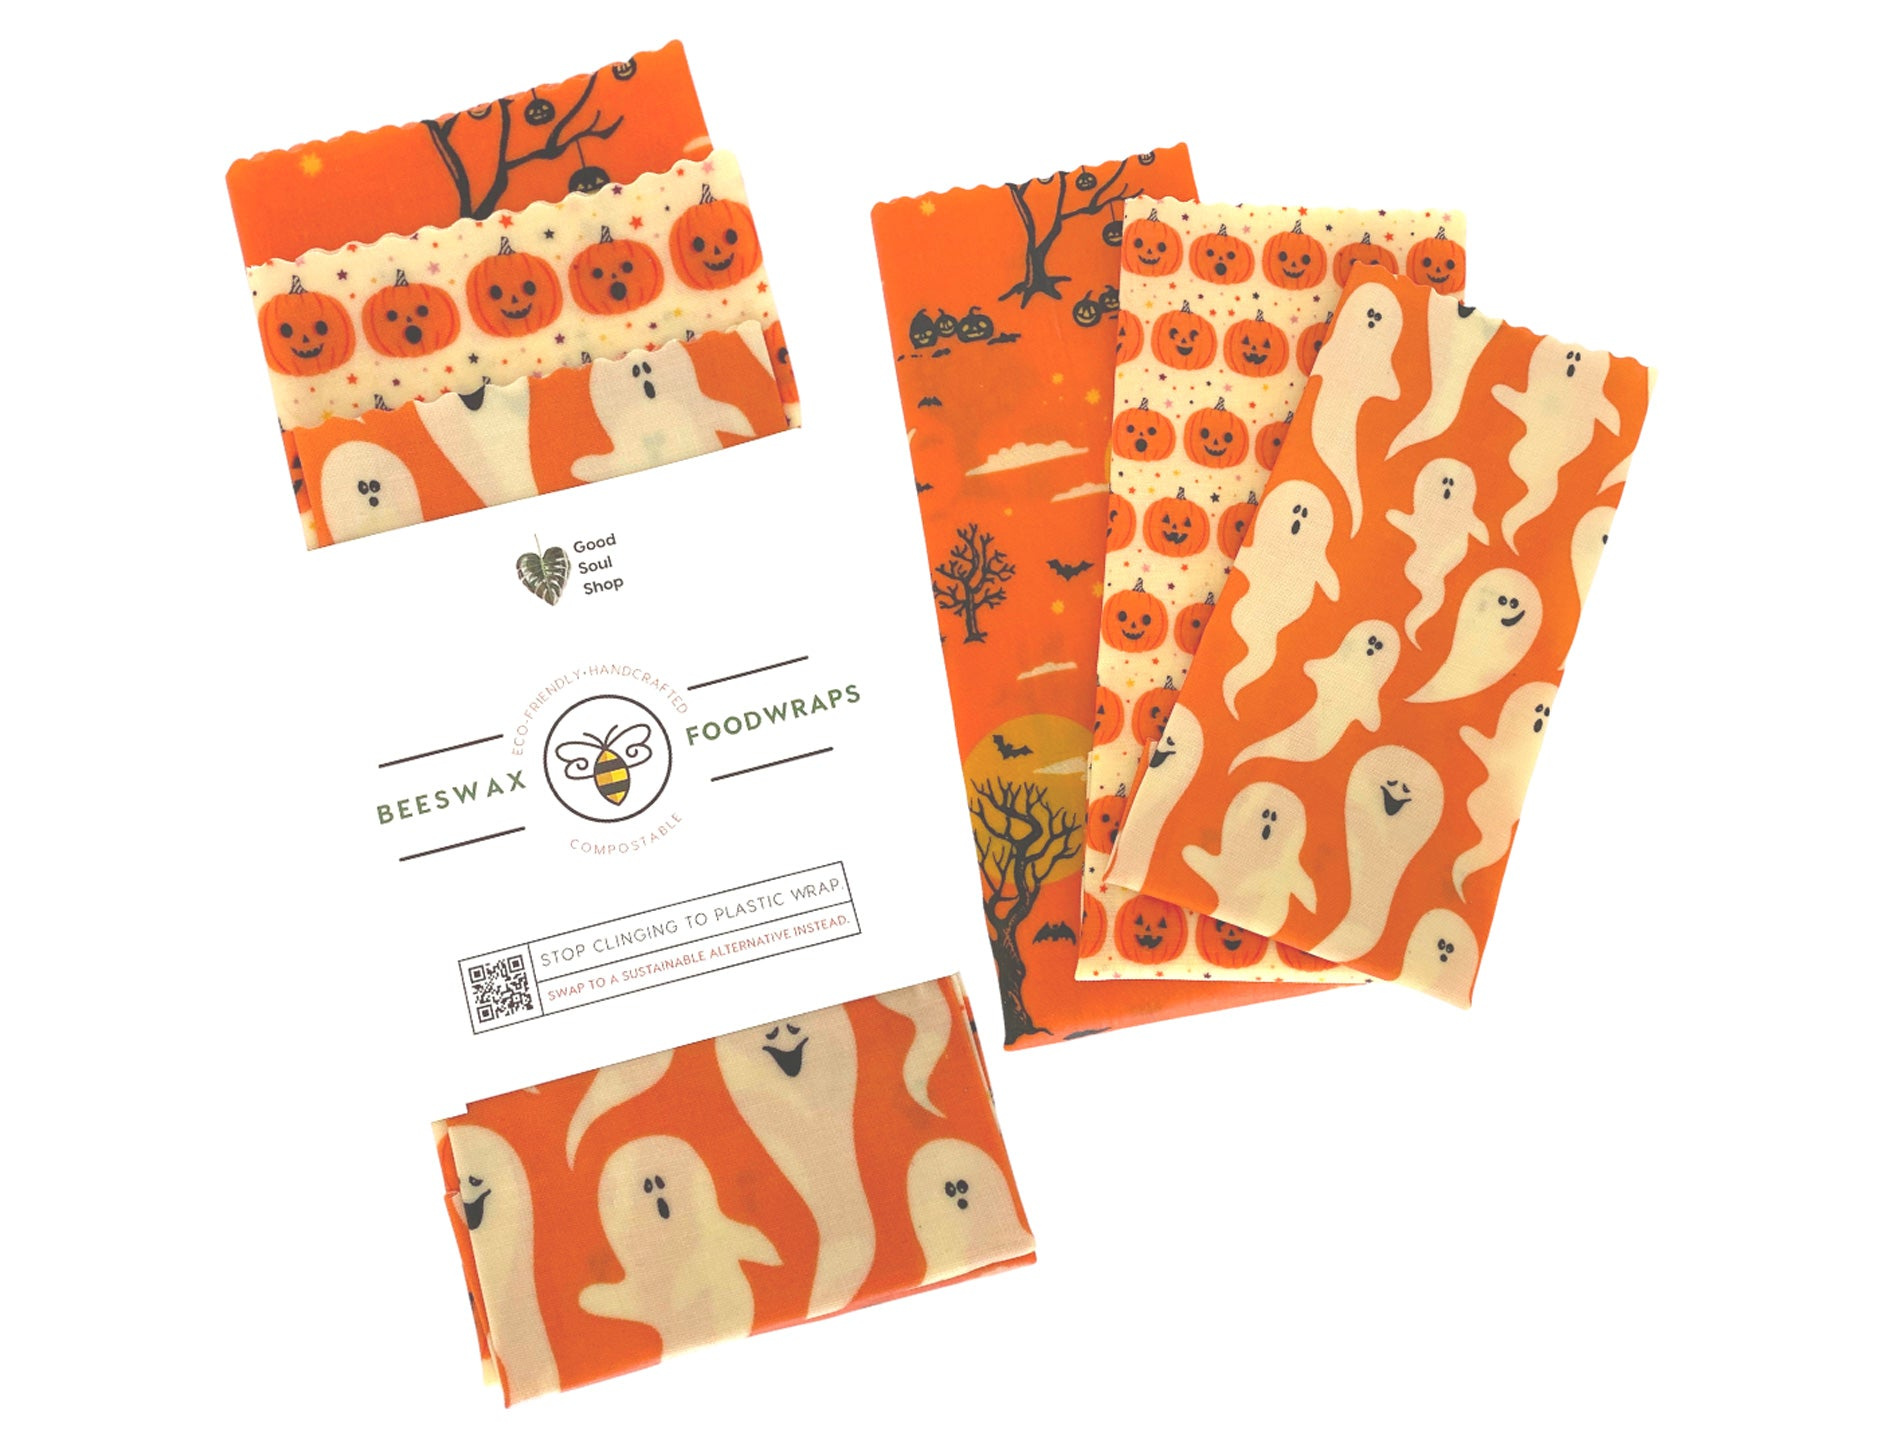 Jack-O-Lantern Beeswax Set - Good Soul Shop